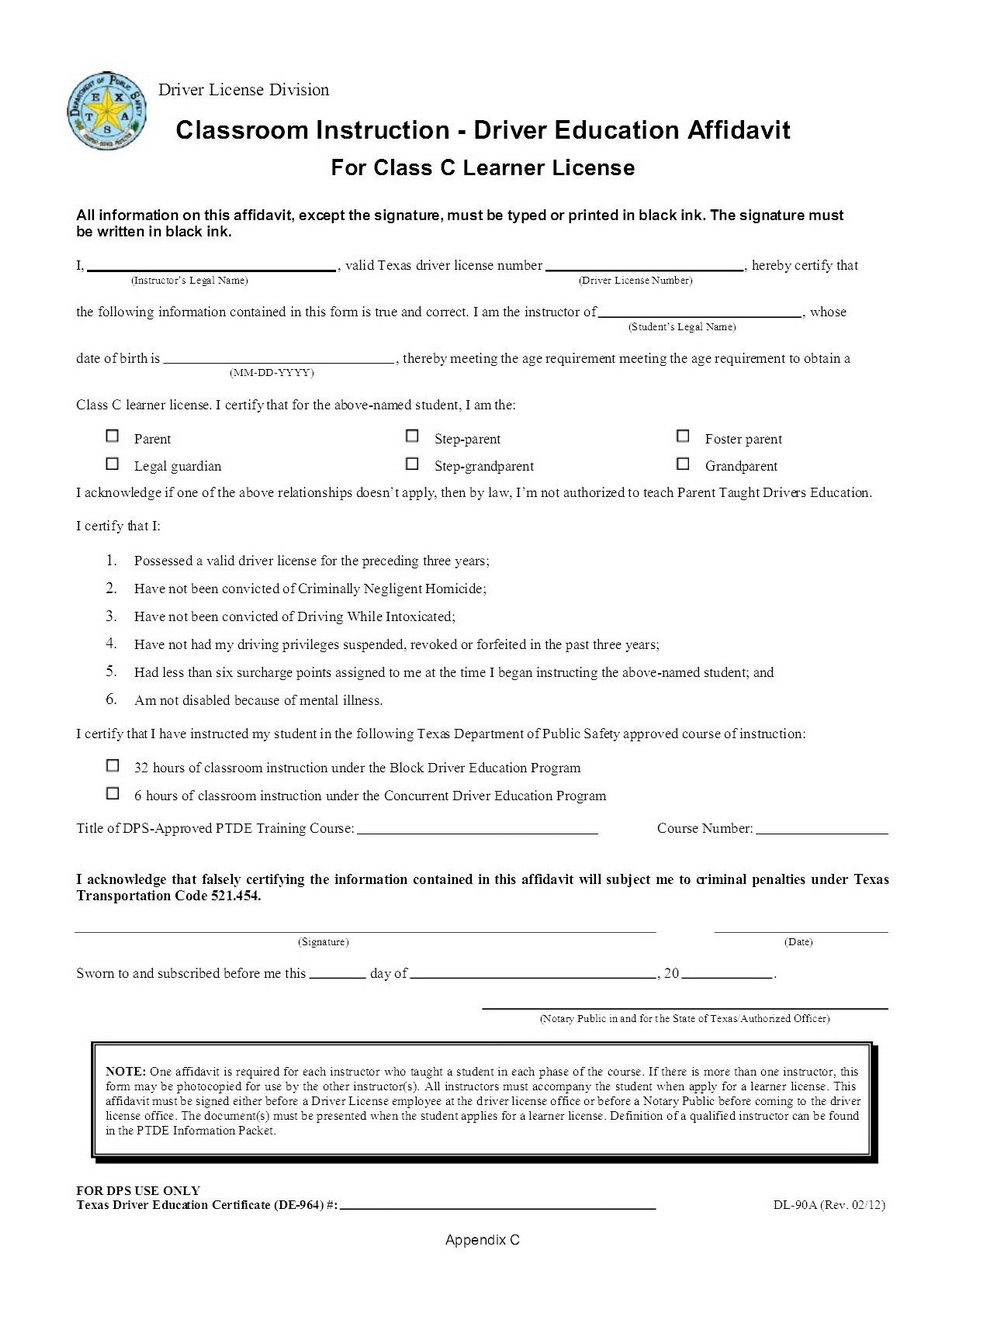 Affidavit Form Texas Dps